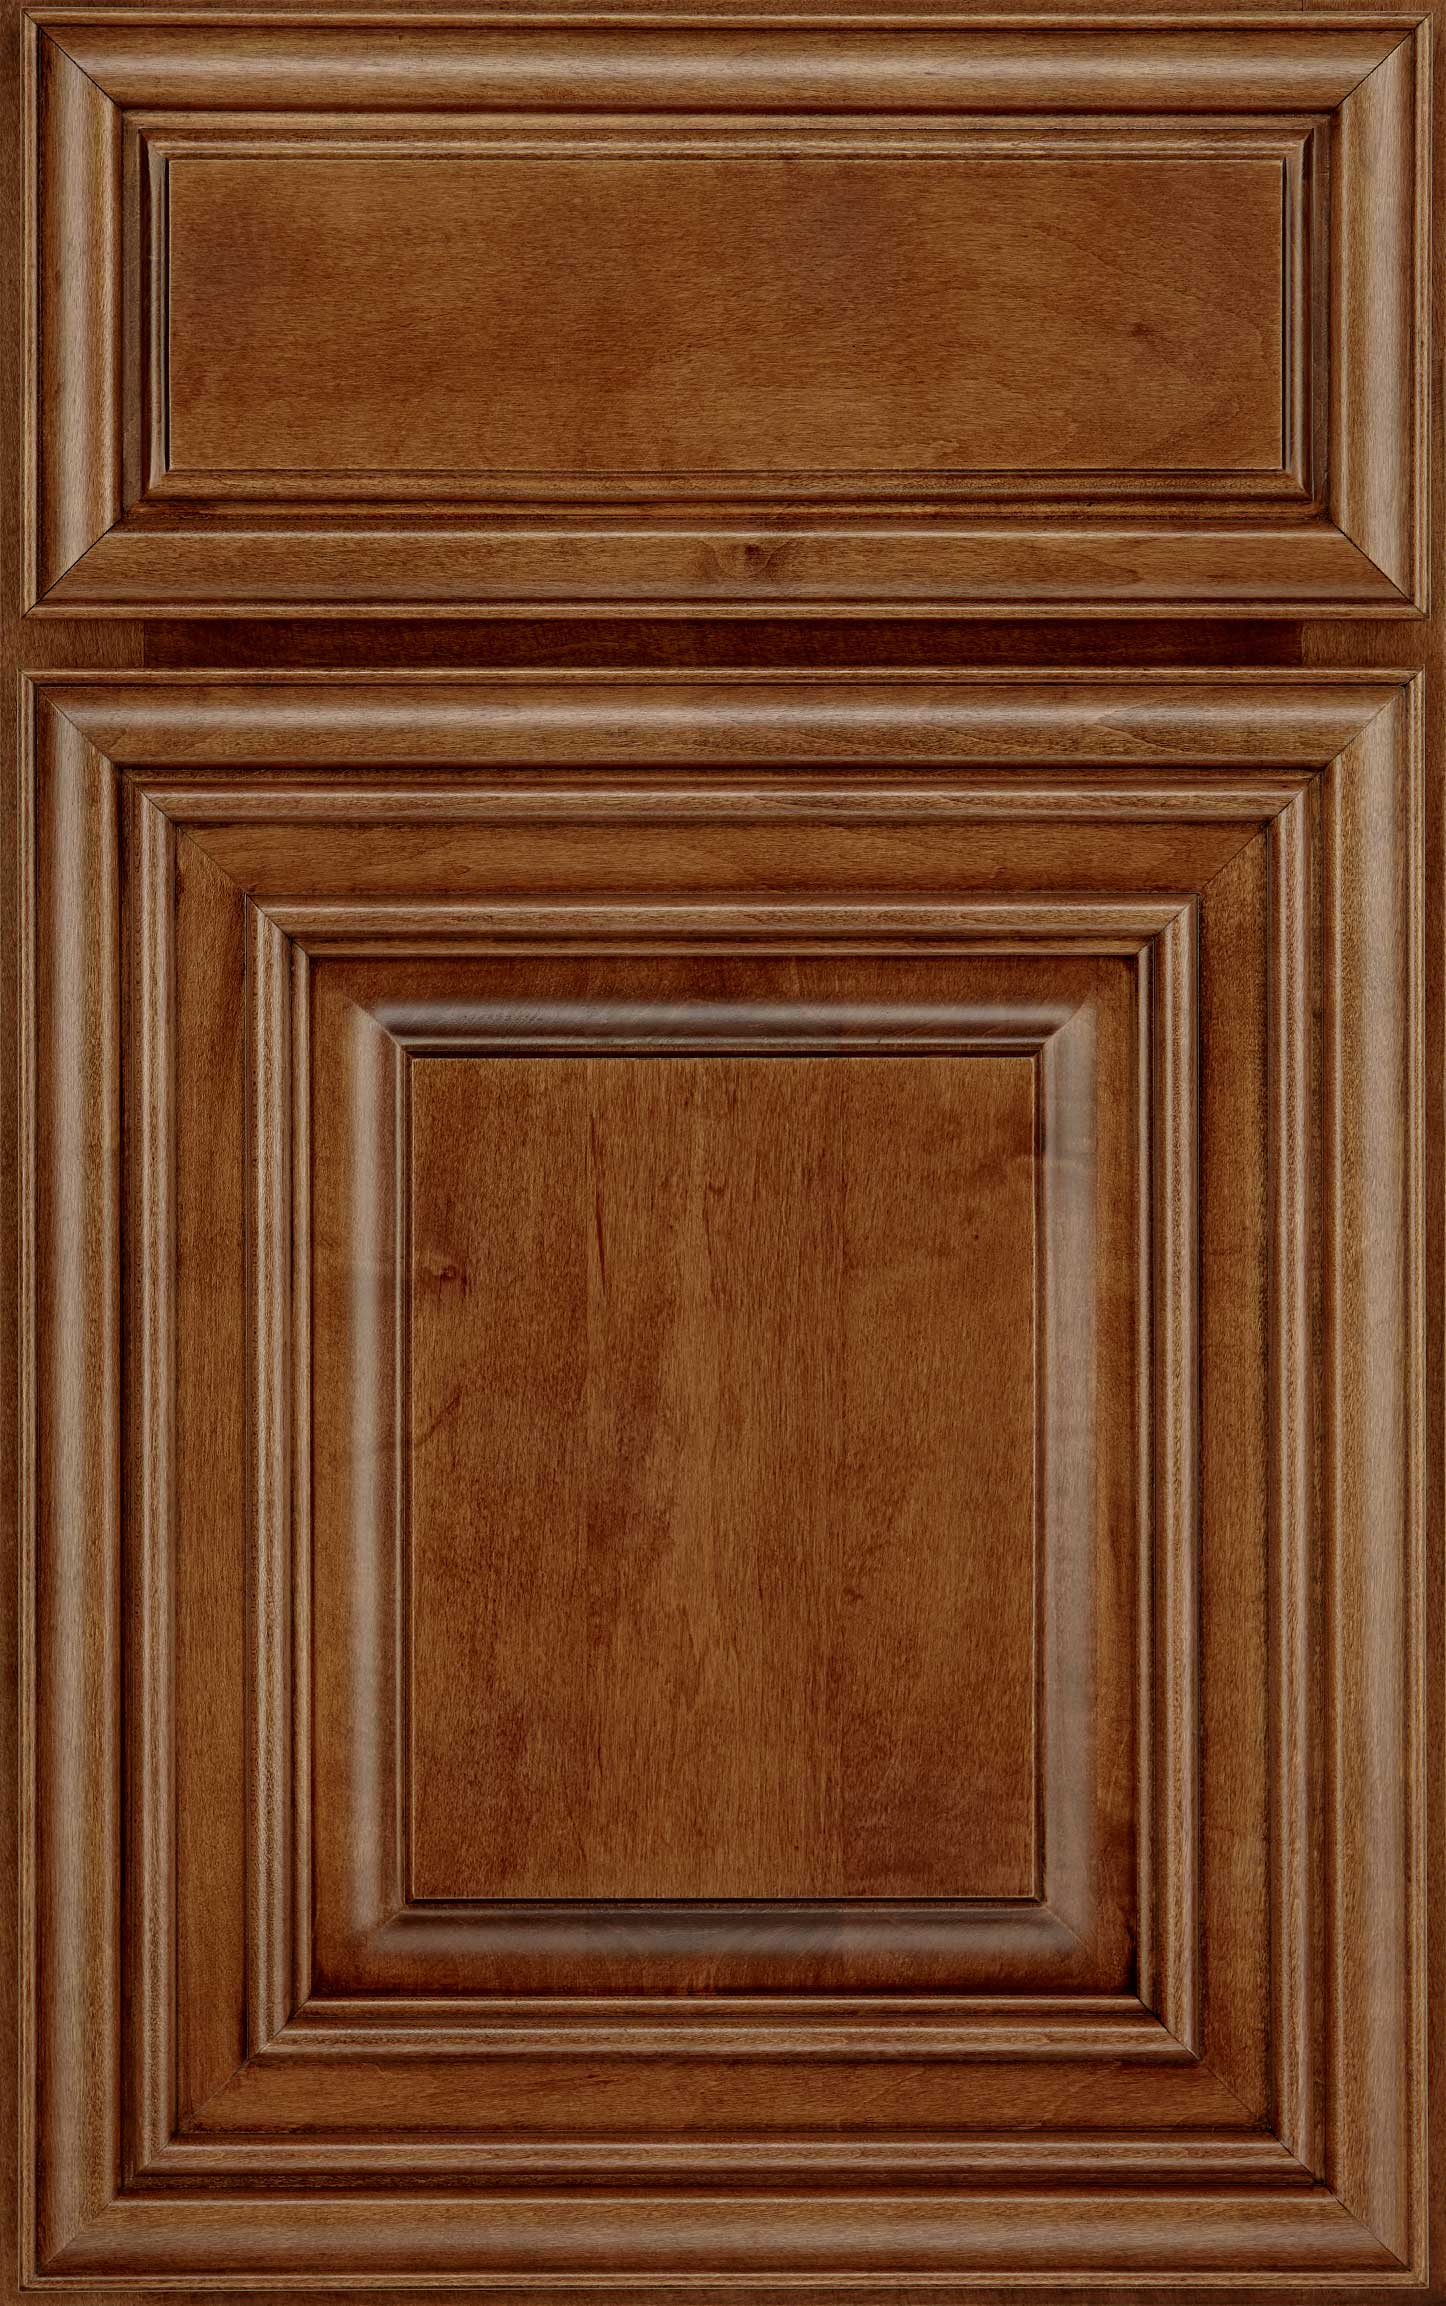 Victoria cabinet door in natural